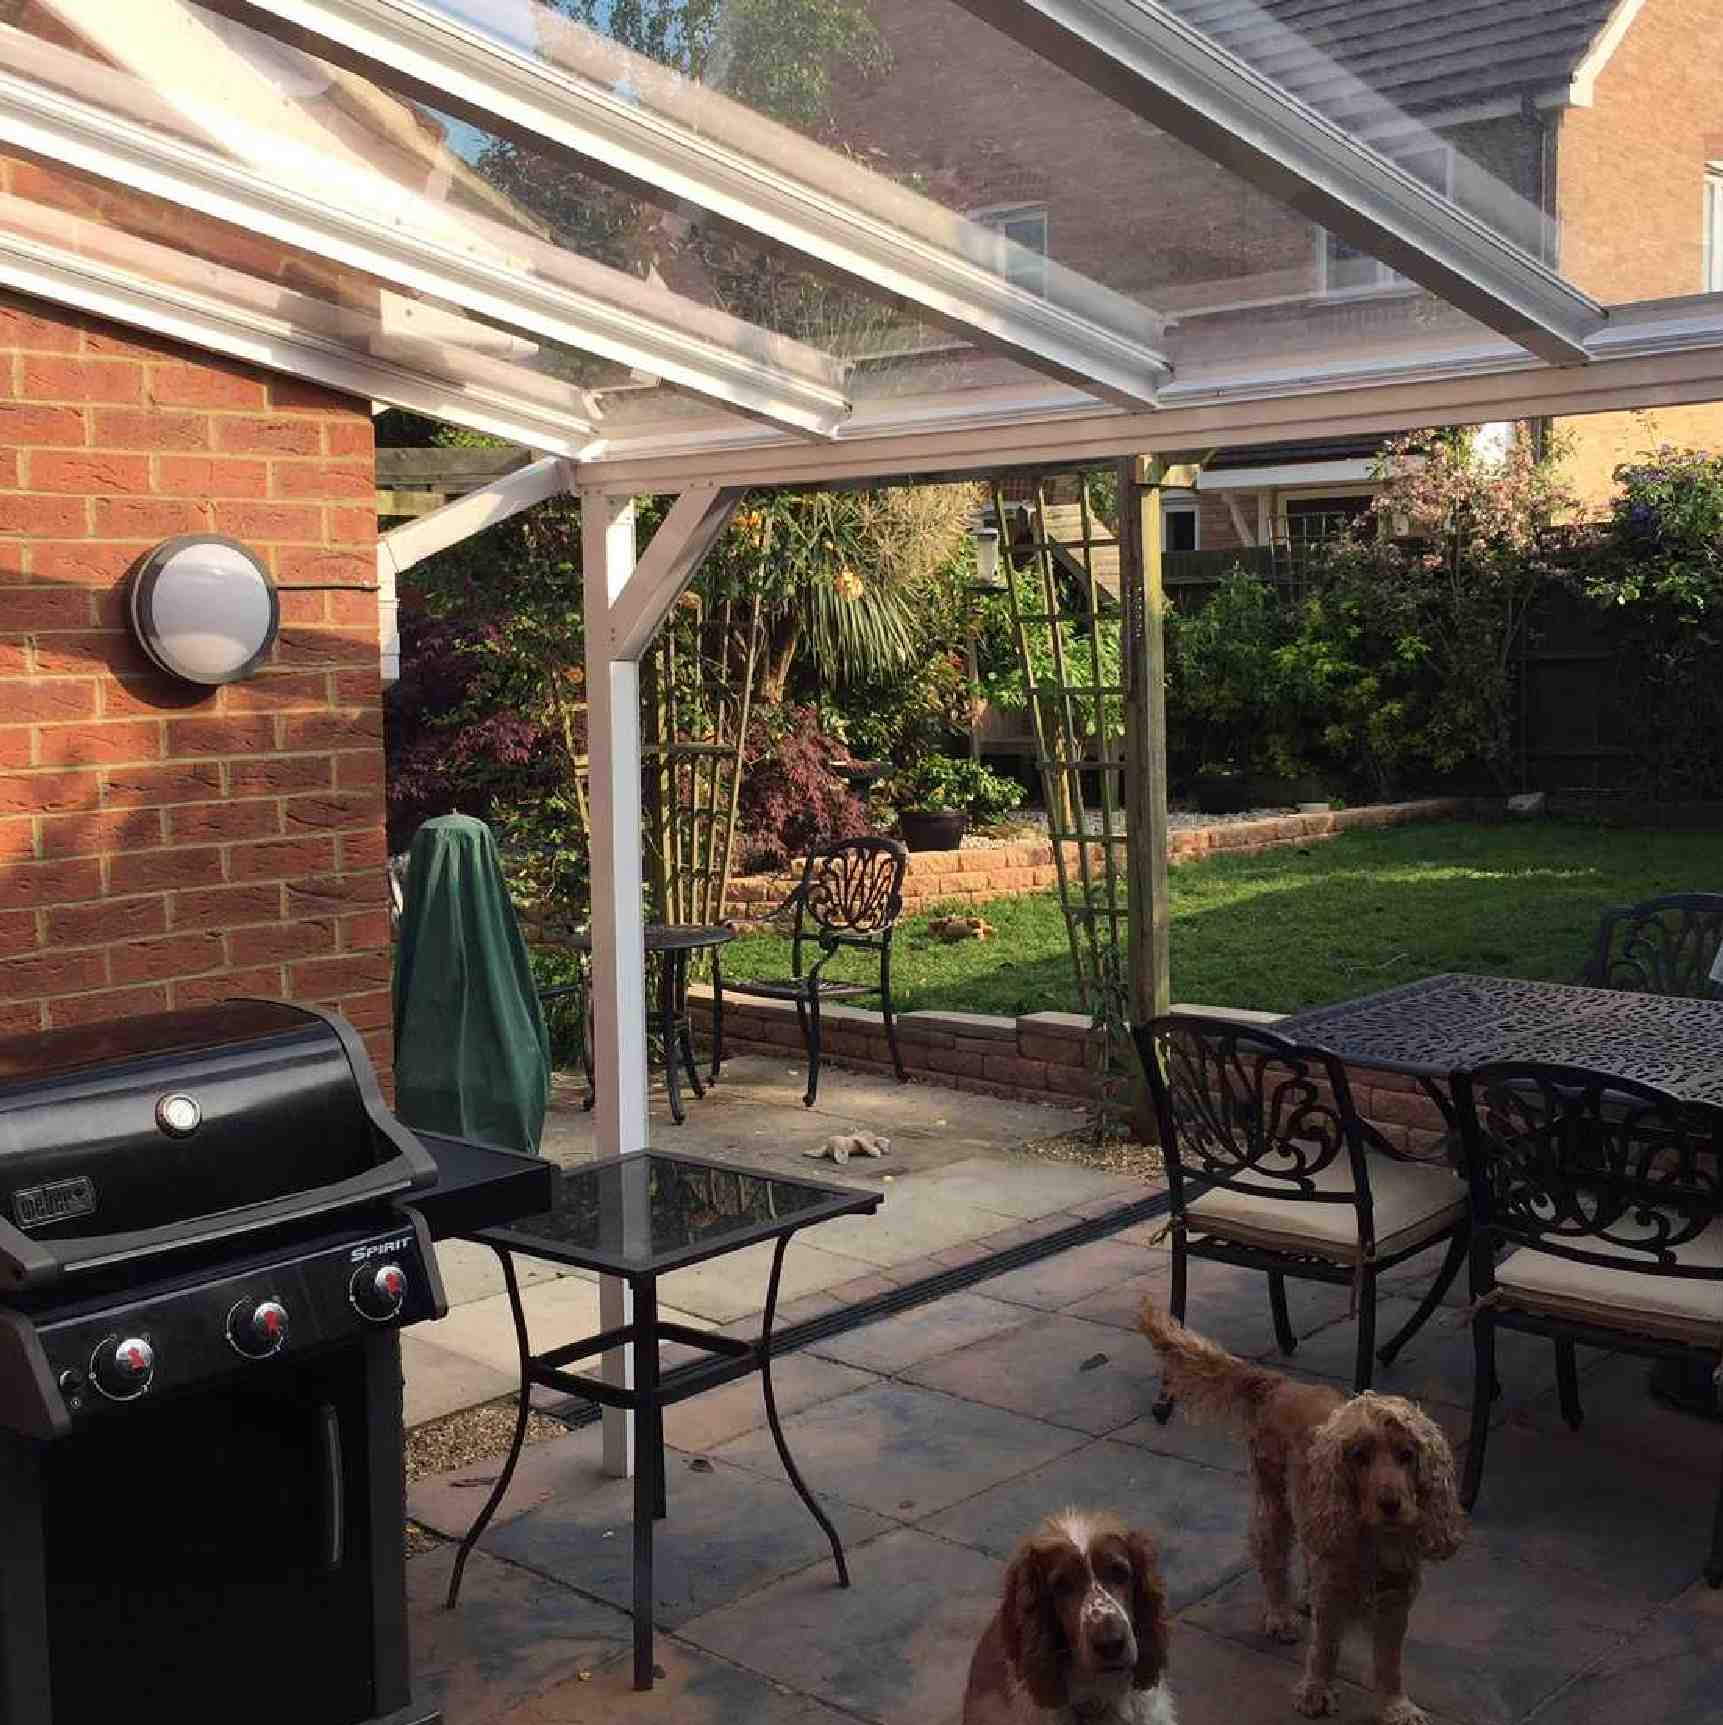 Omega Verandah with 6mm Glass Clear Plate Polycarbonate Glazing - 7.0m (W) x 3.0m (P), (4) Supporting Posts